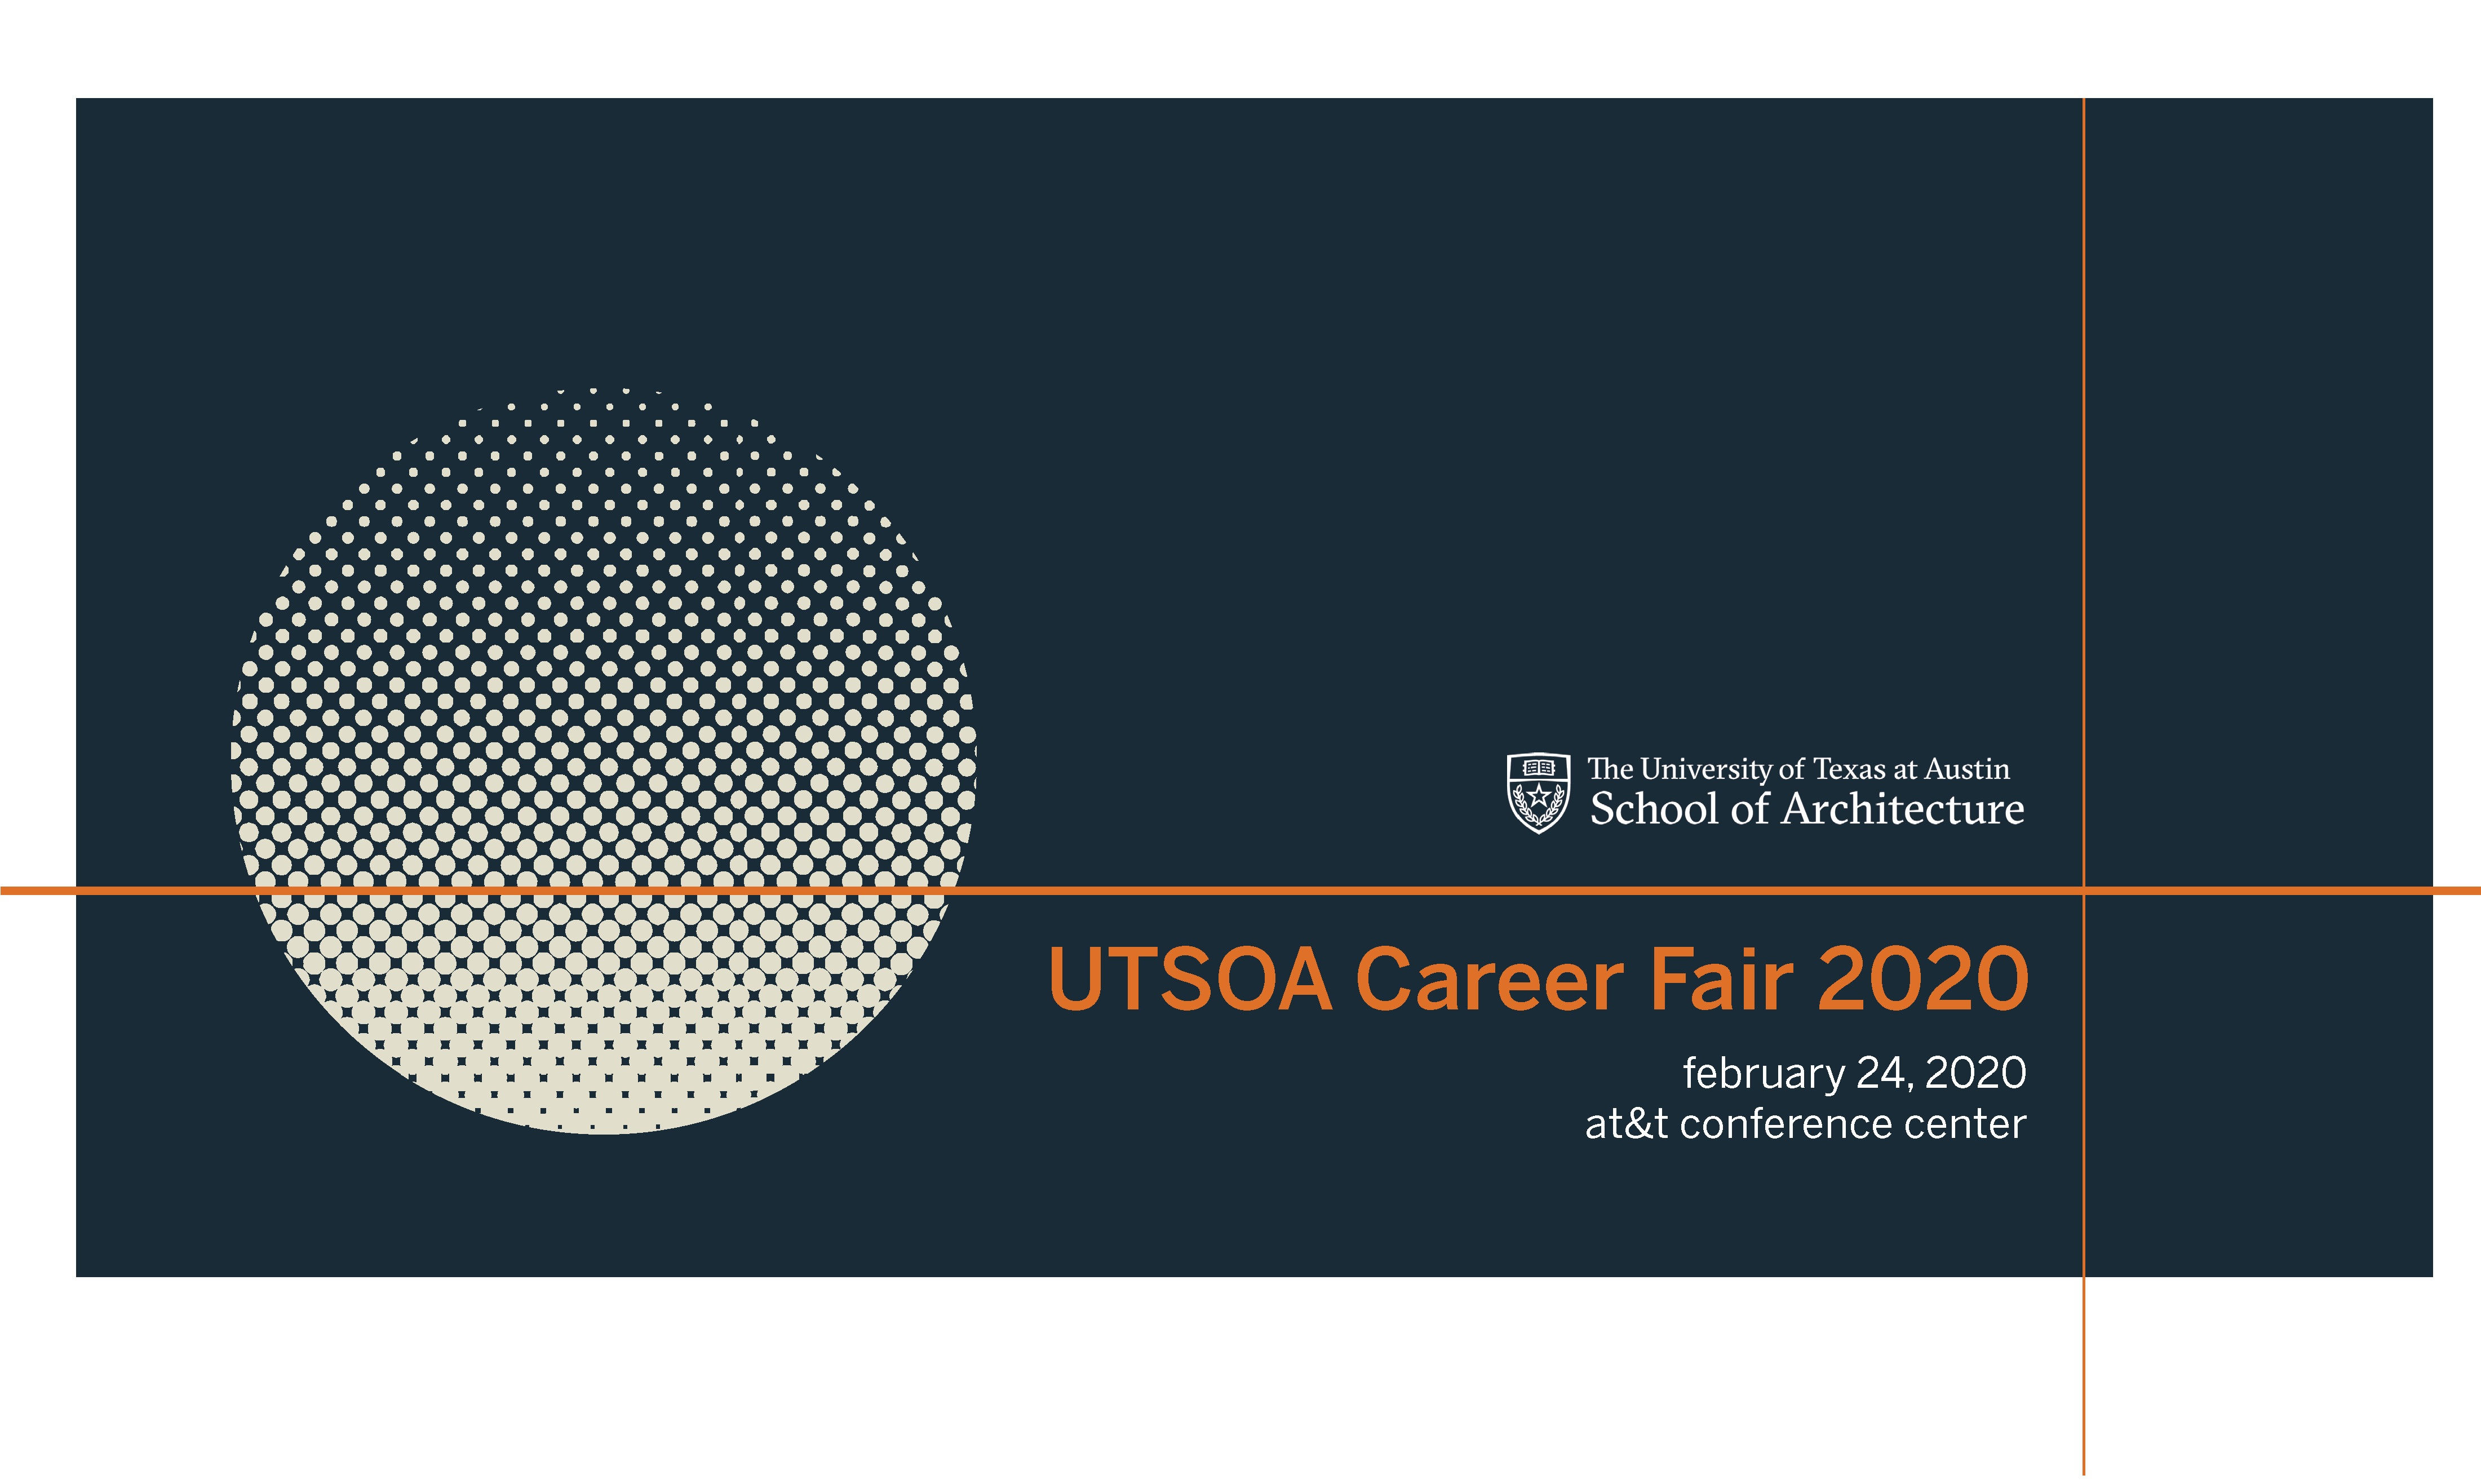 Career Fair 2020